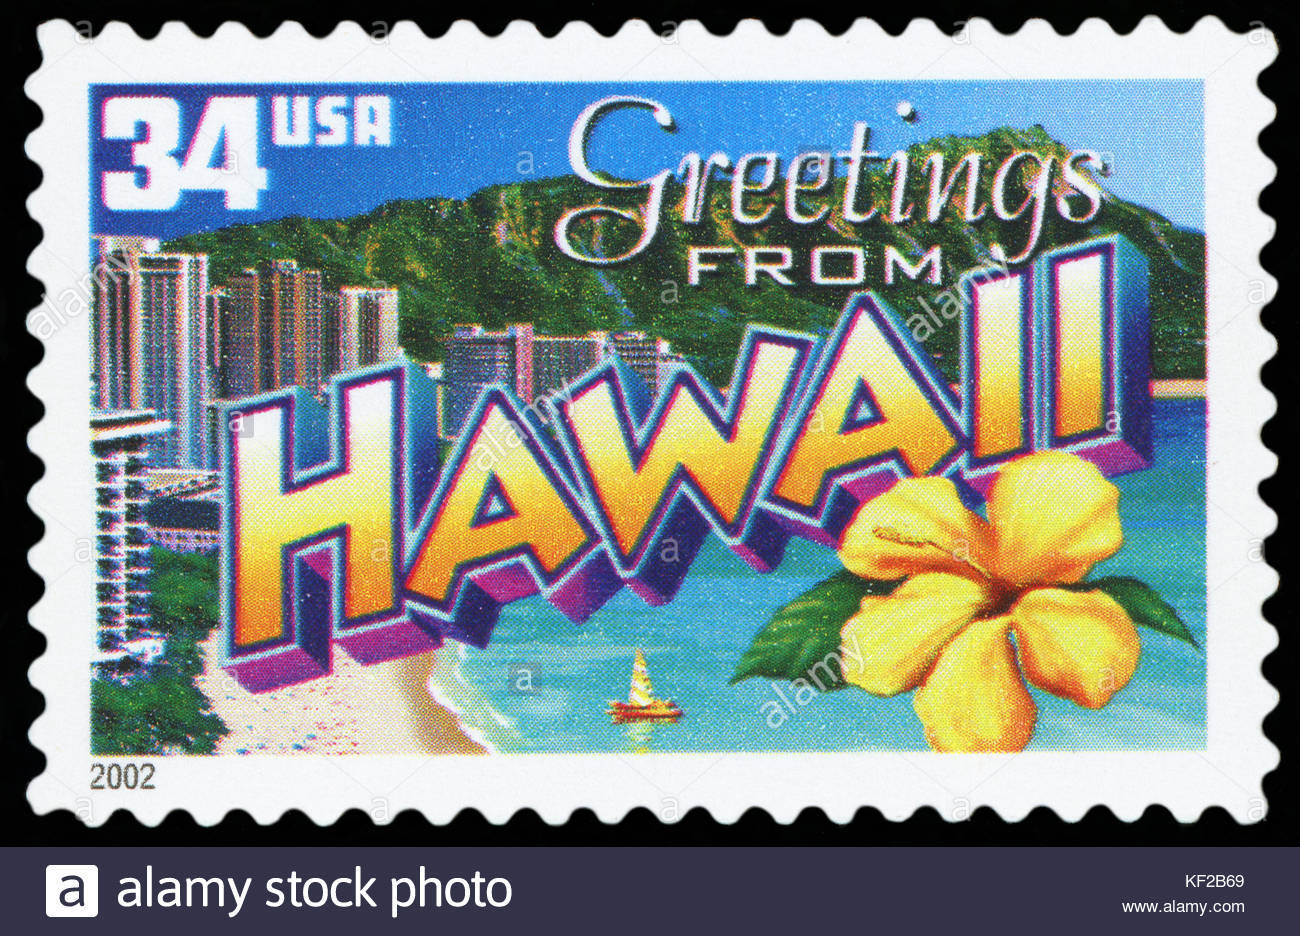 Us postage stamp greetings from hawaii stock photo 164165857 us postage stamp greetings from hawaii kristyandbryce Choice Image